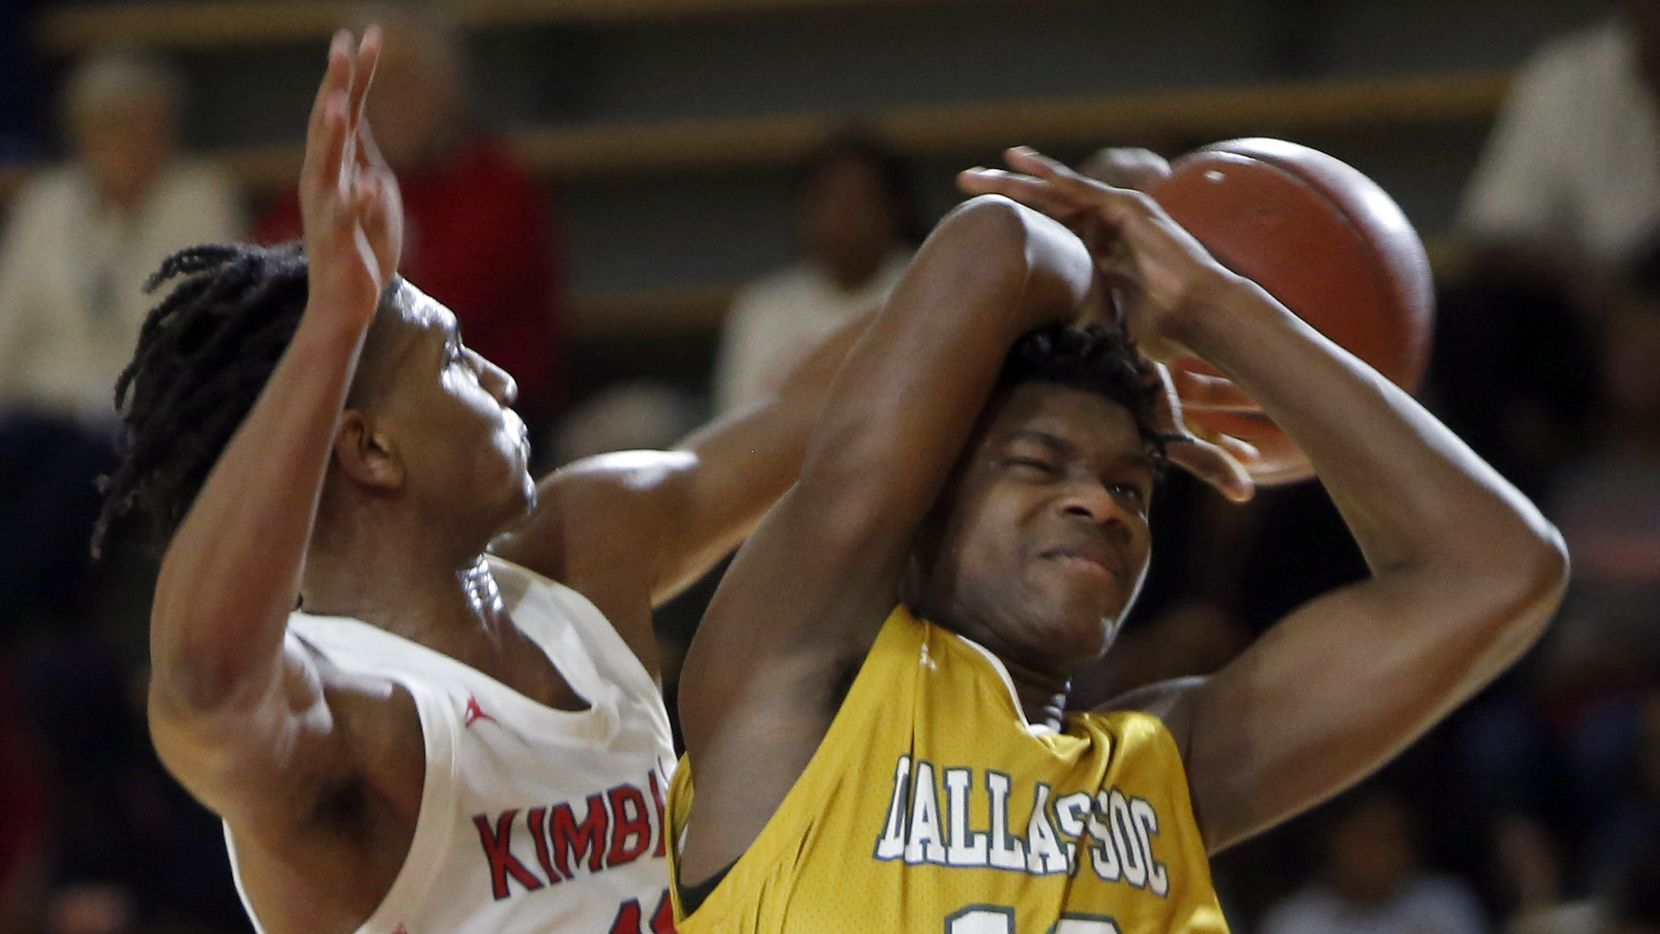 Dallas Kimball's Cory Reynolds (11) leaps to block a shot attempt by Dallas Oak Cliff's Antonio Patterson (13) during second half action. Kimball won in overtime, 75-72. The two Dallas ISD boys basketball teams played their game at Sprague Field House in Dallas on February 4, 2020.